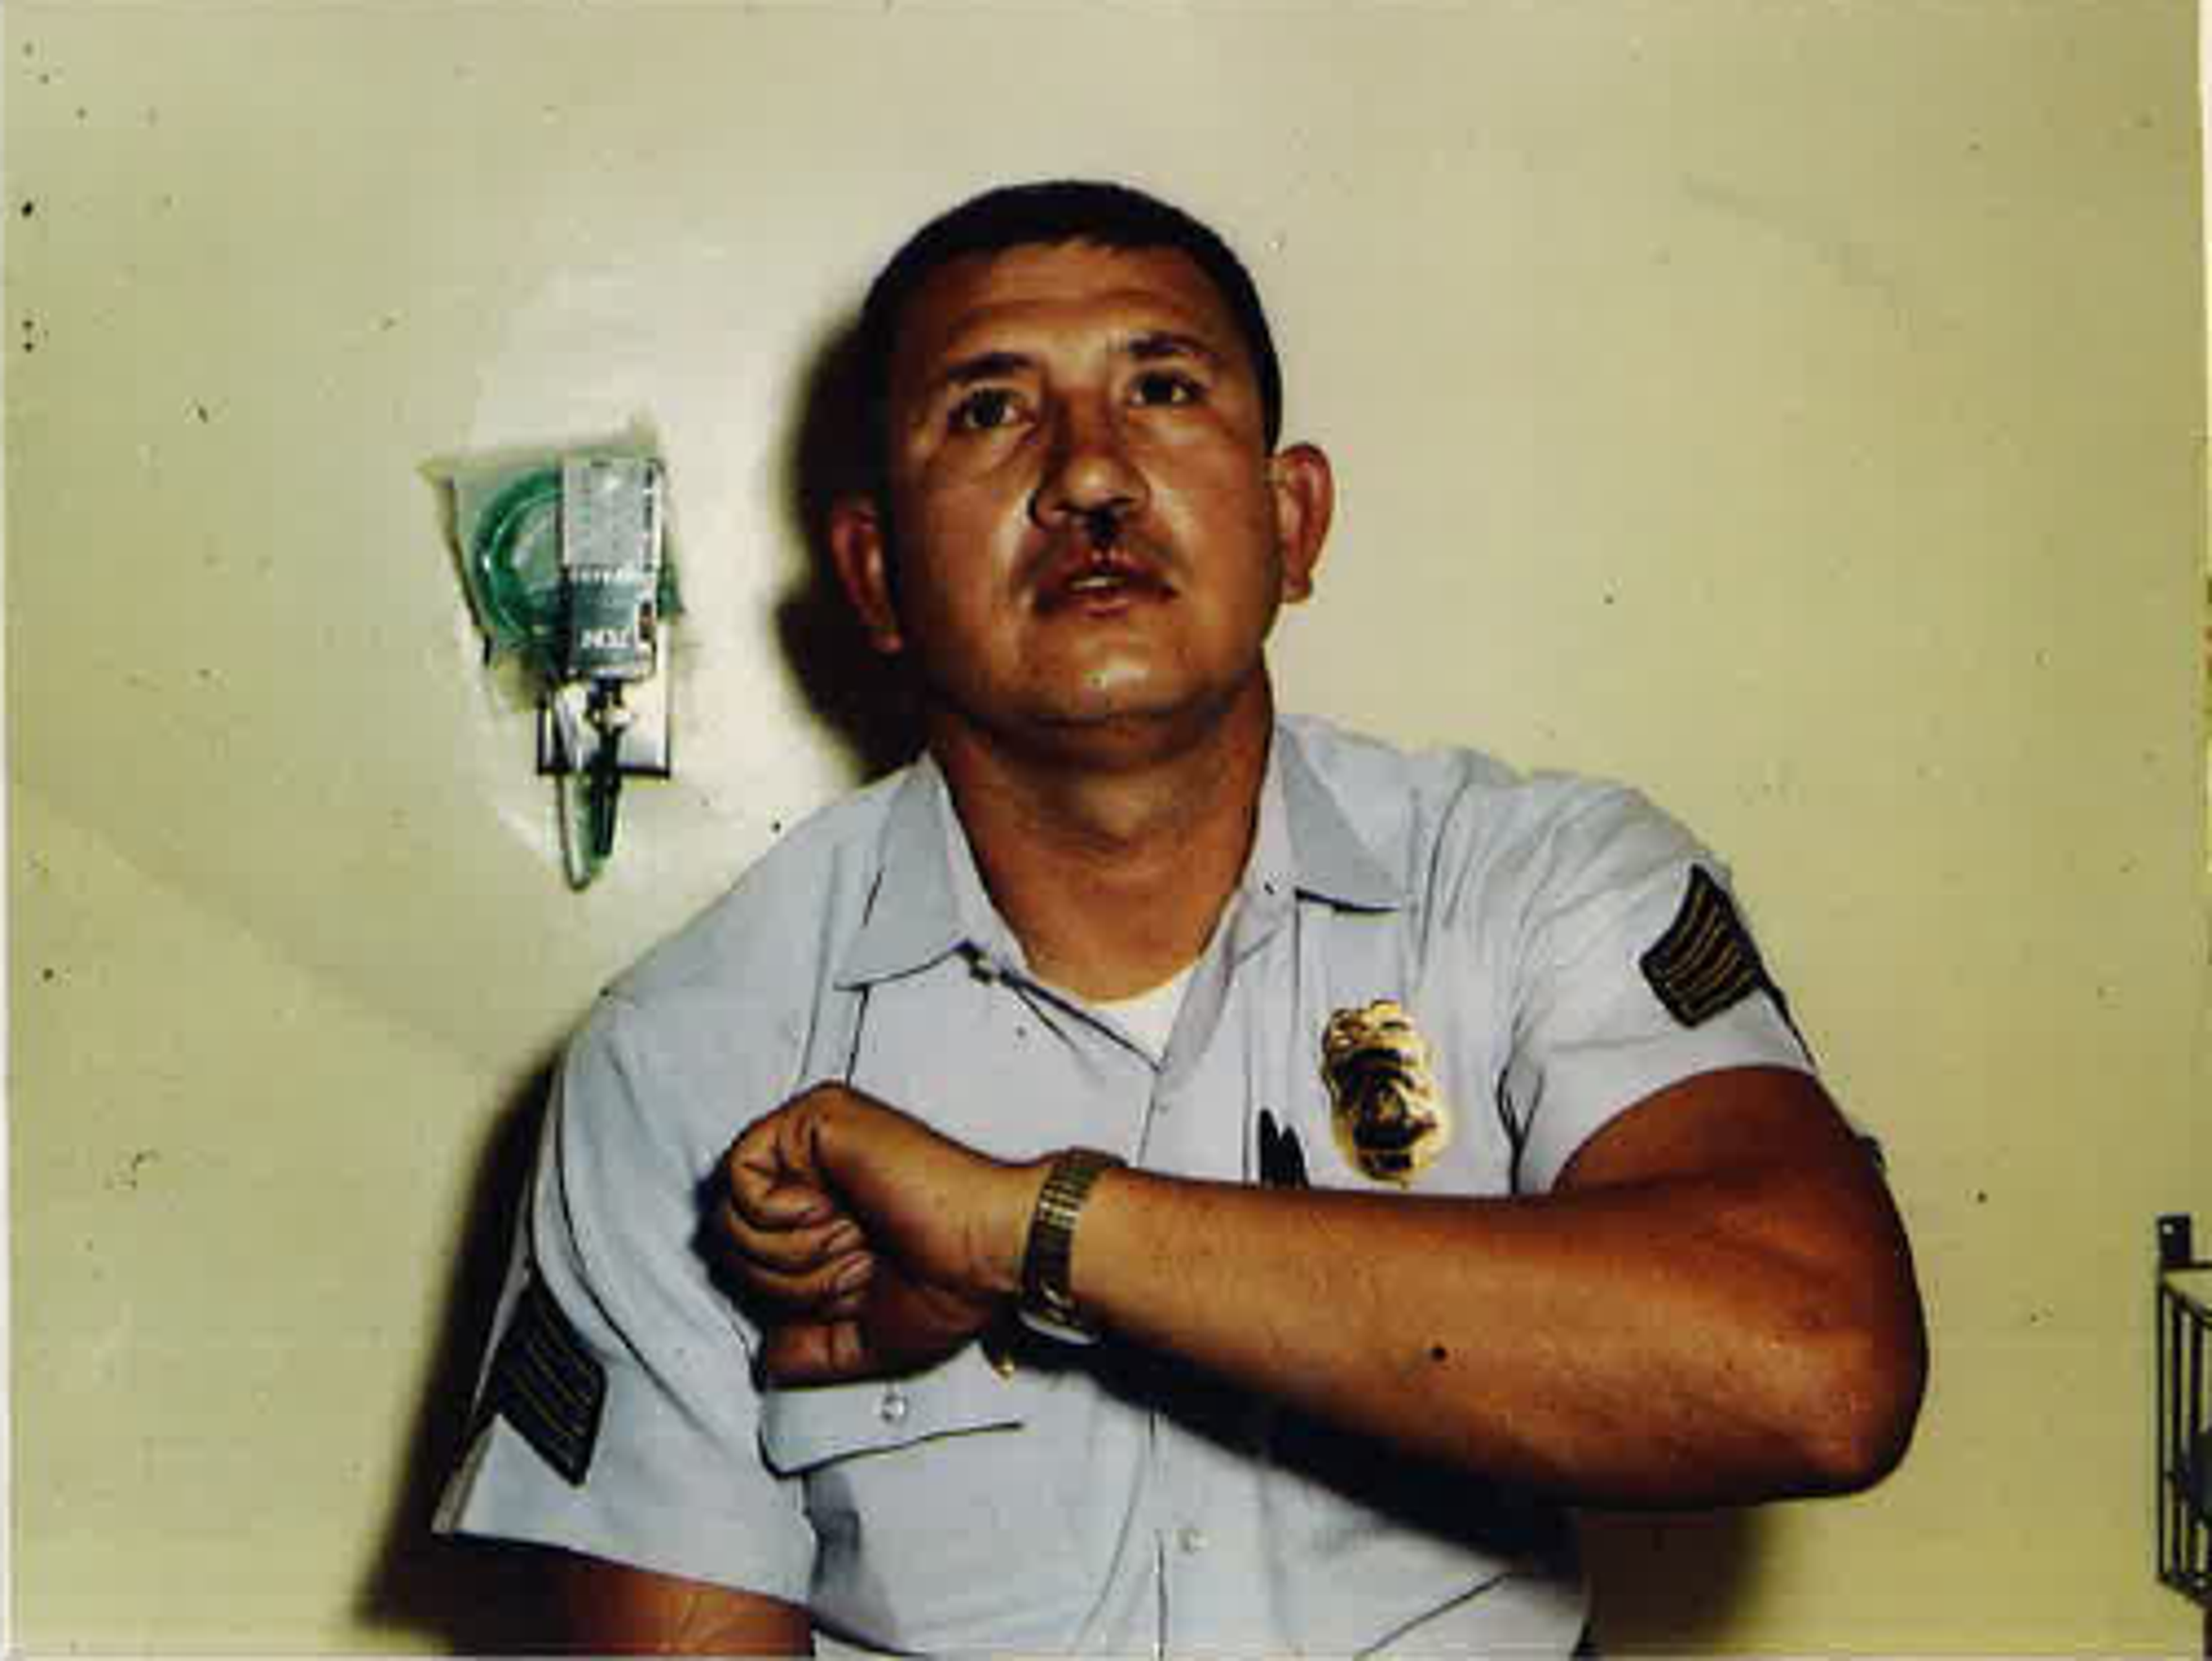 A 1968 photo of Phoenix police officer Manny Quiñonez after he was shot with birdshot in the lip, head and arm. This was Quinonez's second shooting in the line of duty.